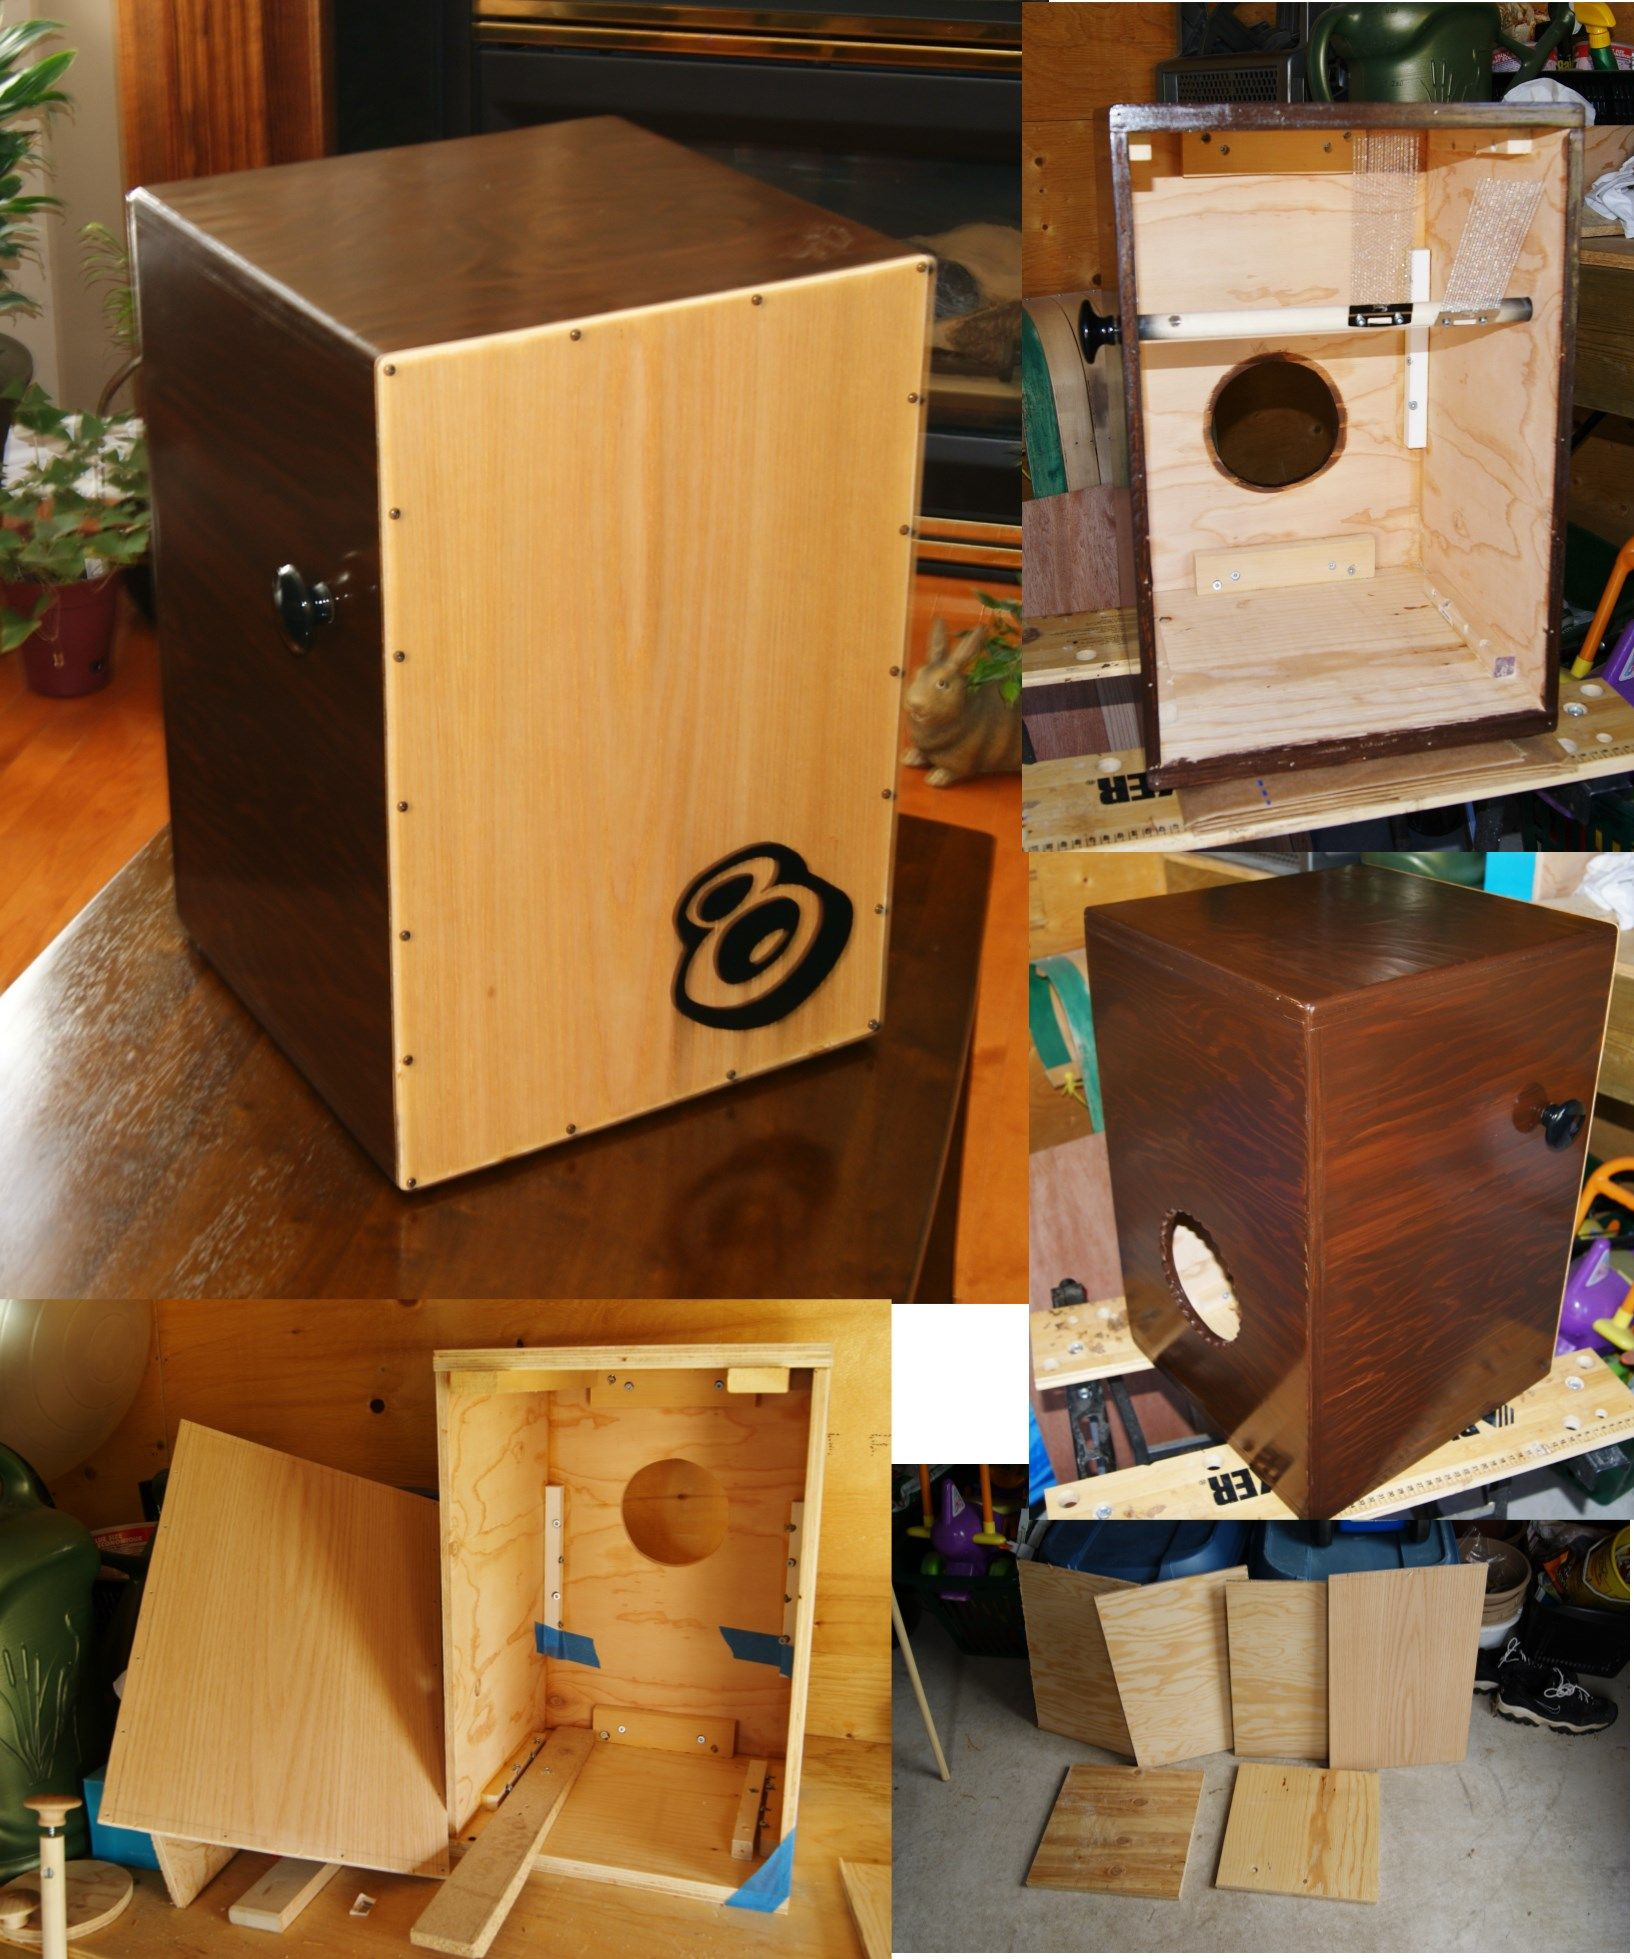 Homemade Cajon (Box Drum) ... I made this cajon just out of